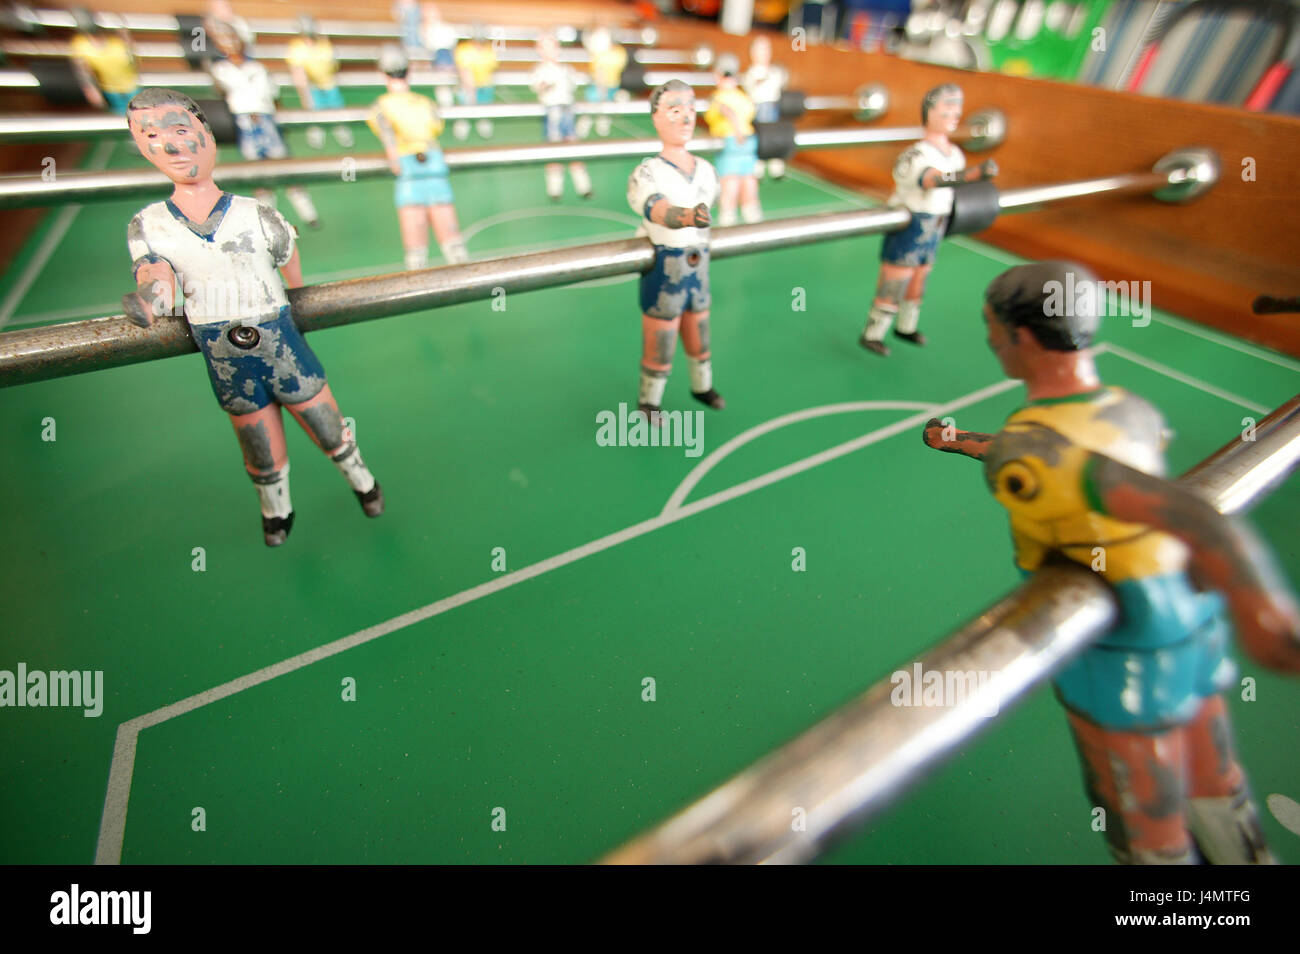 Table football, old, detail table football match, football player, leisure time, entertainment, game, sticks, characters, - Stock Image